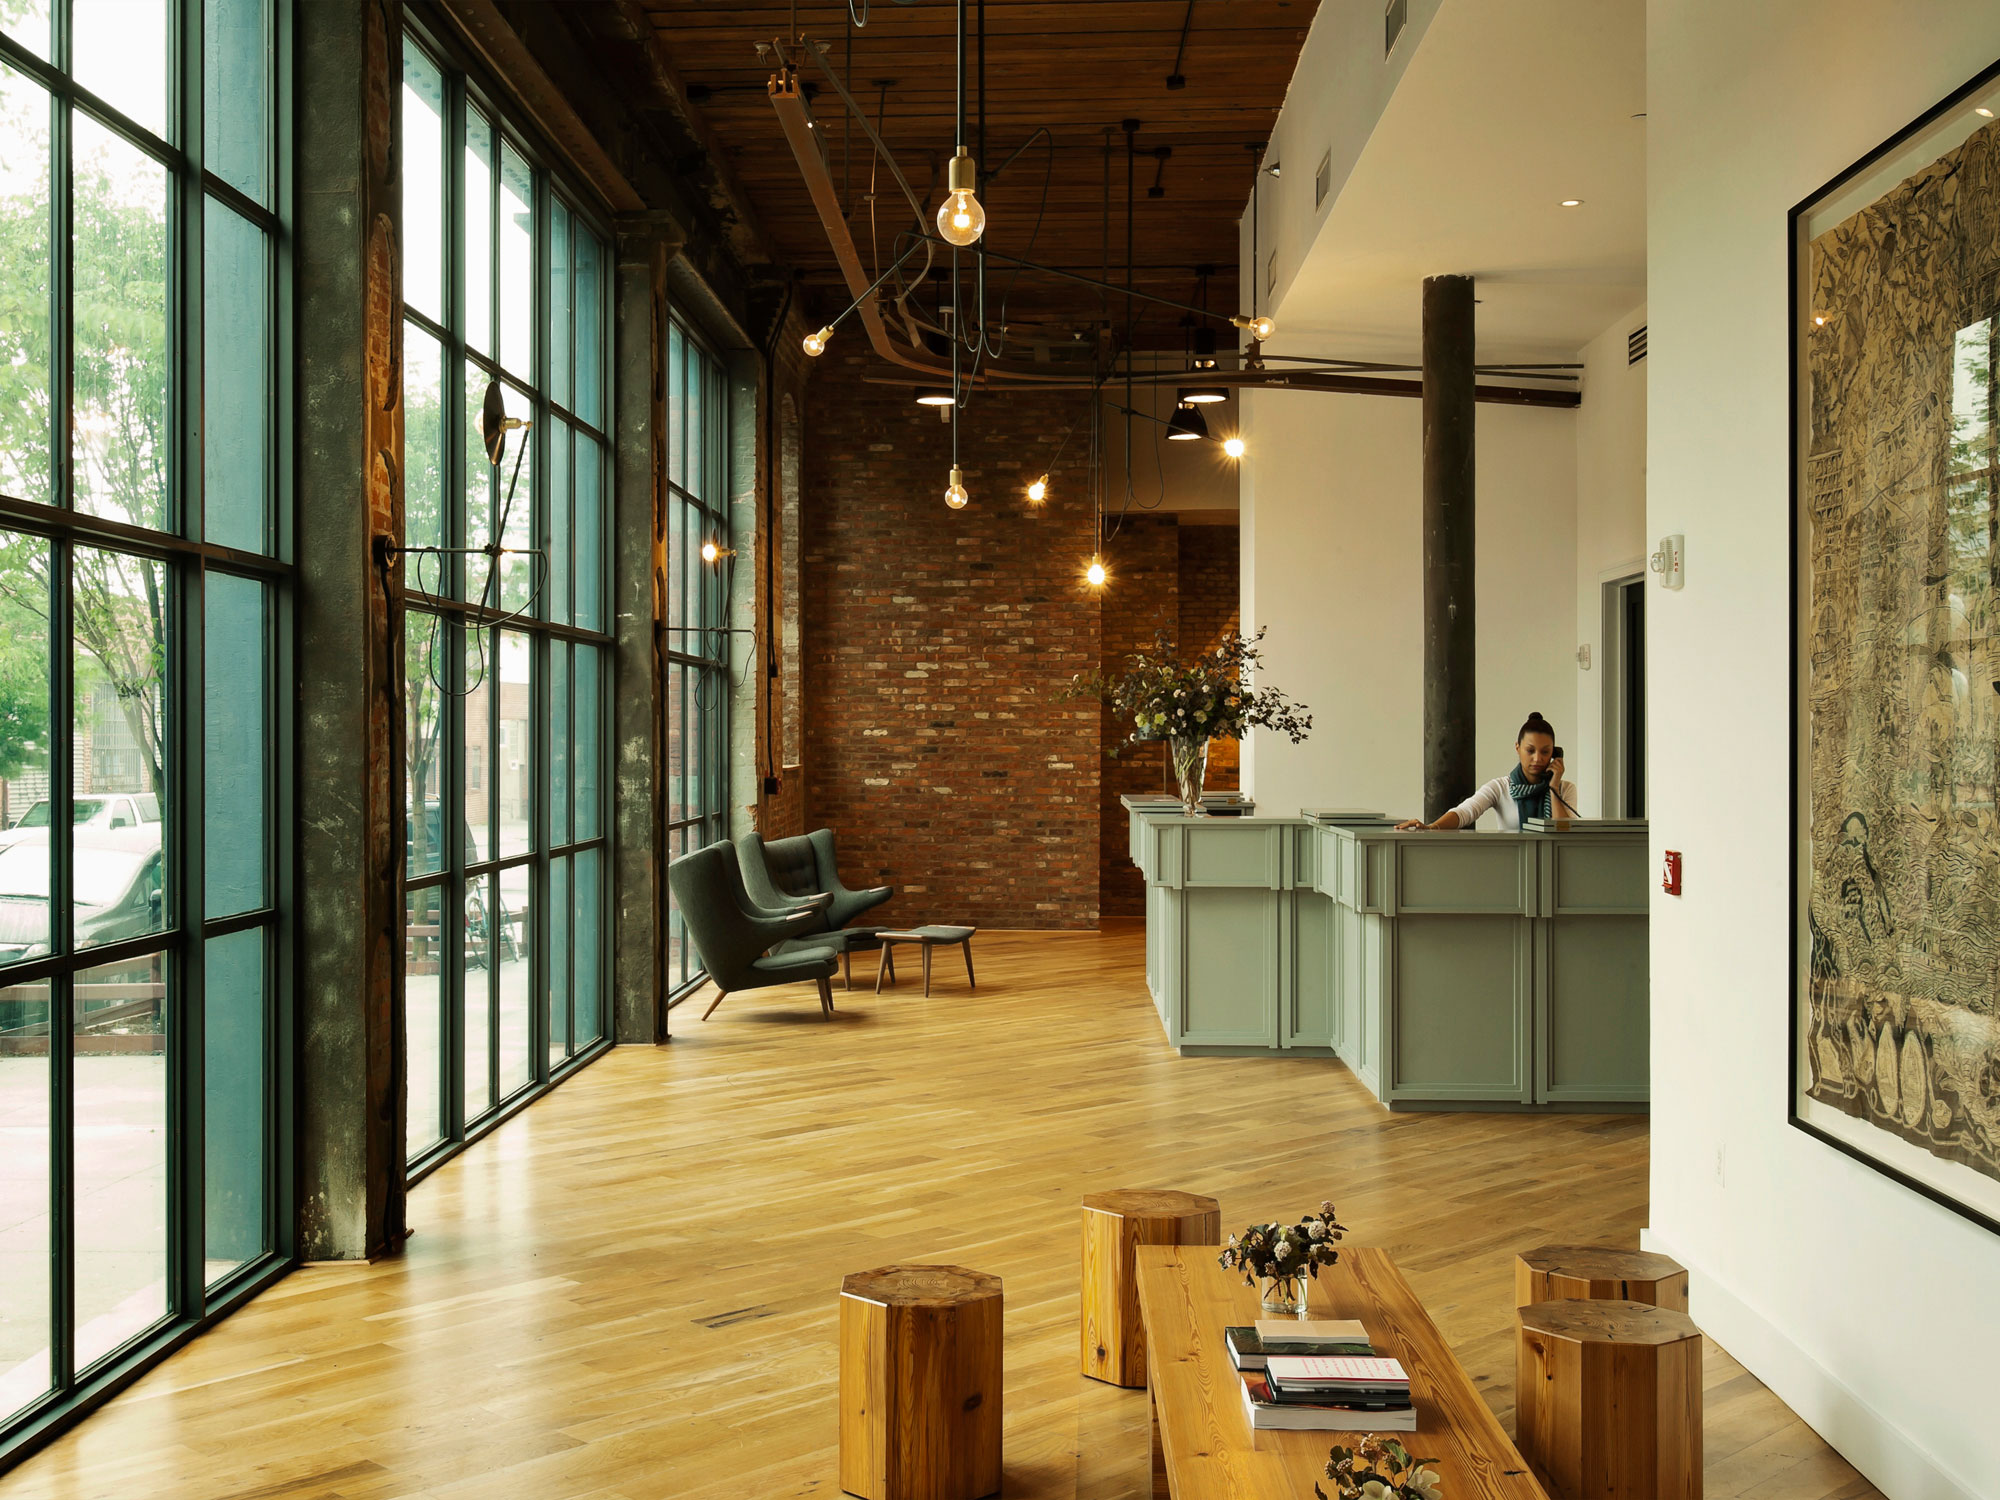 Hotel Design Ny The Wythe Hotel Brooklyn Ny Hotel Design